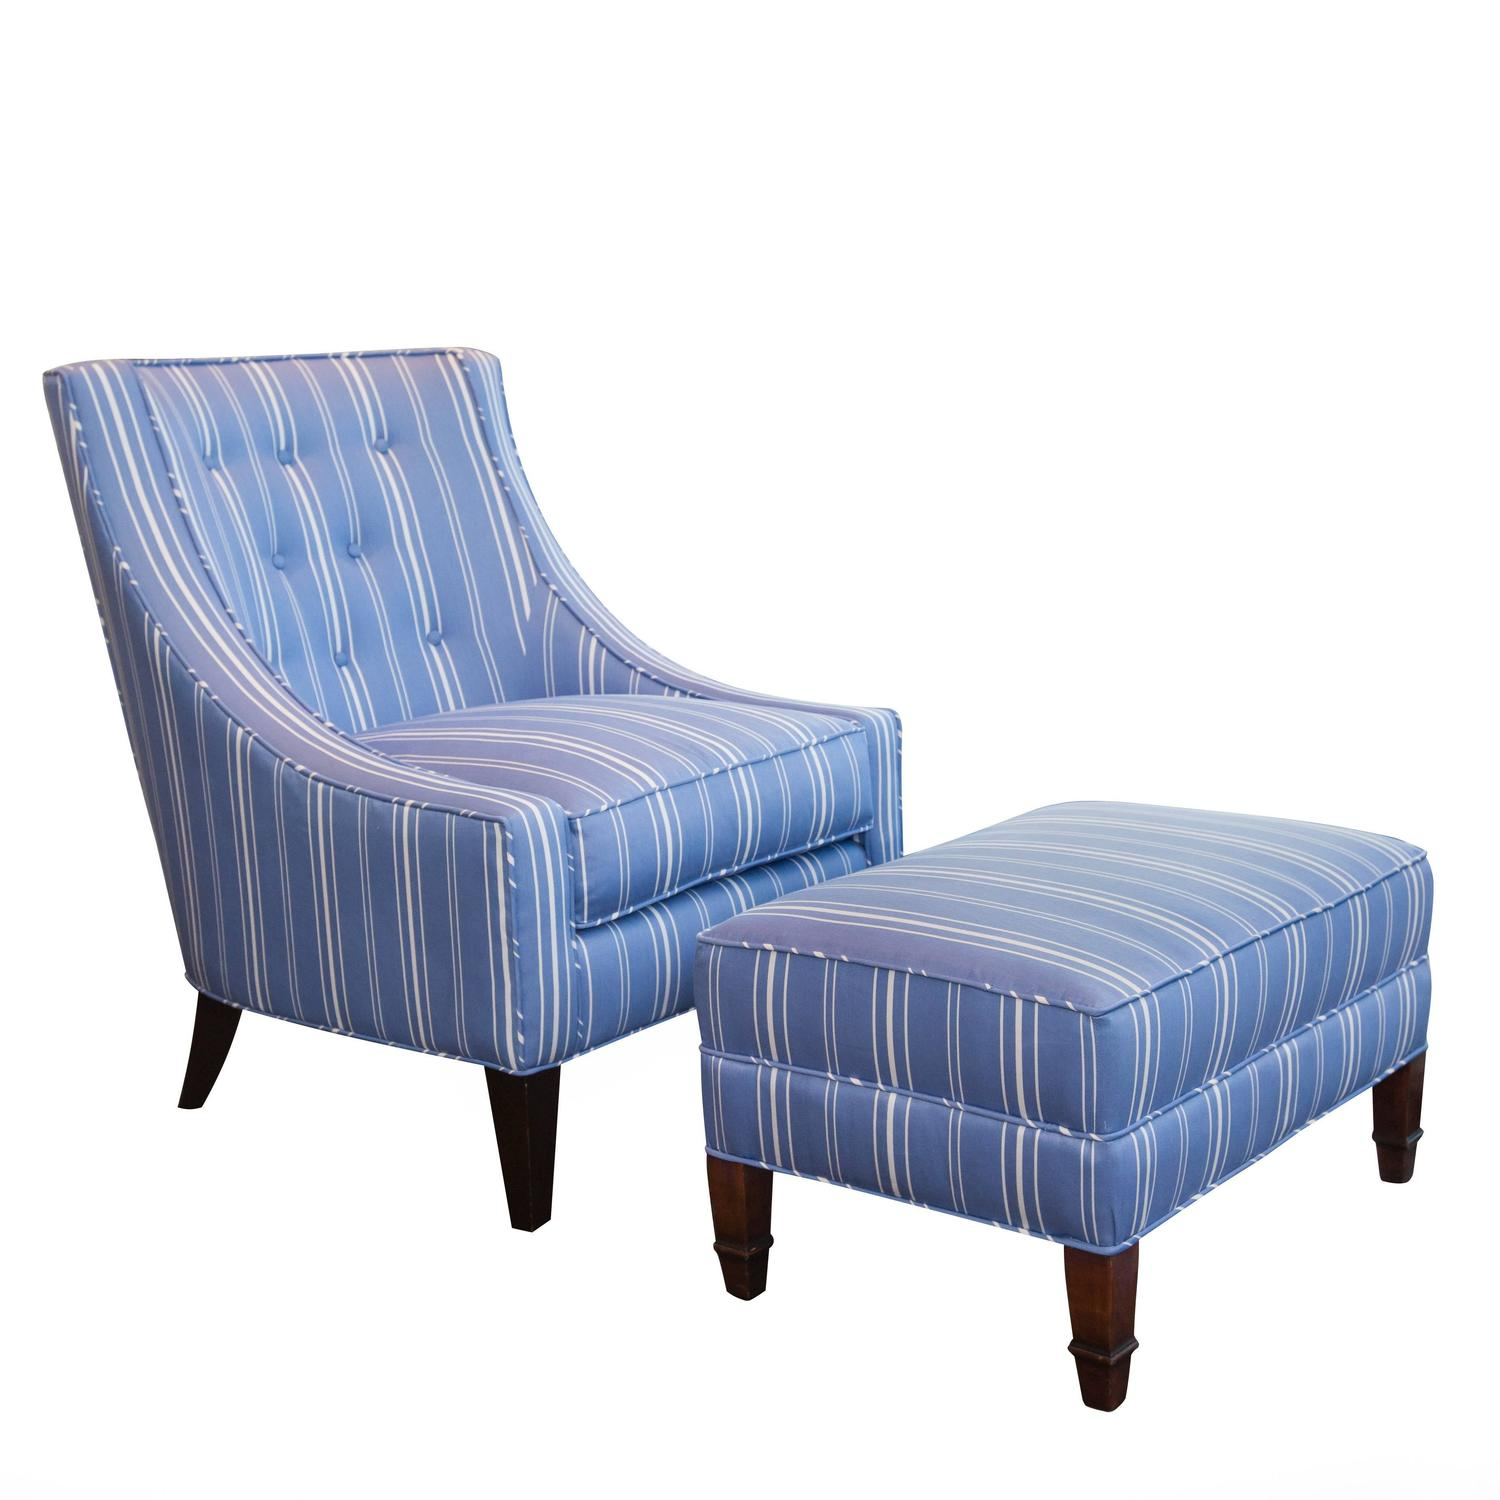 Upholstered lounge chair and ottoman, 1990s